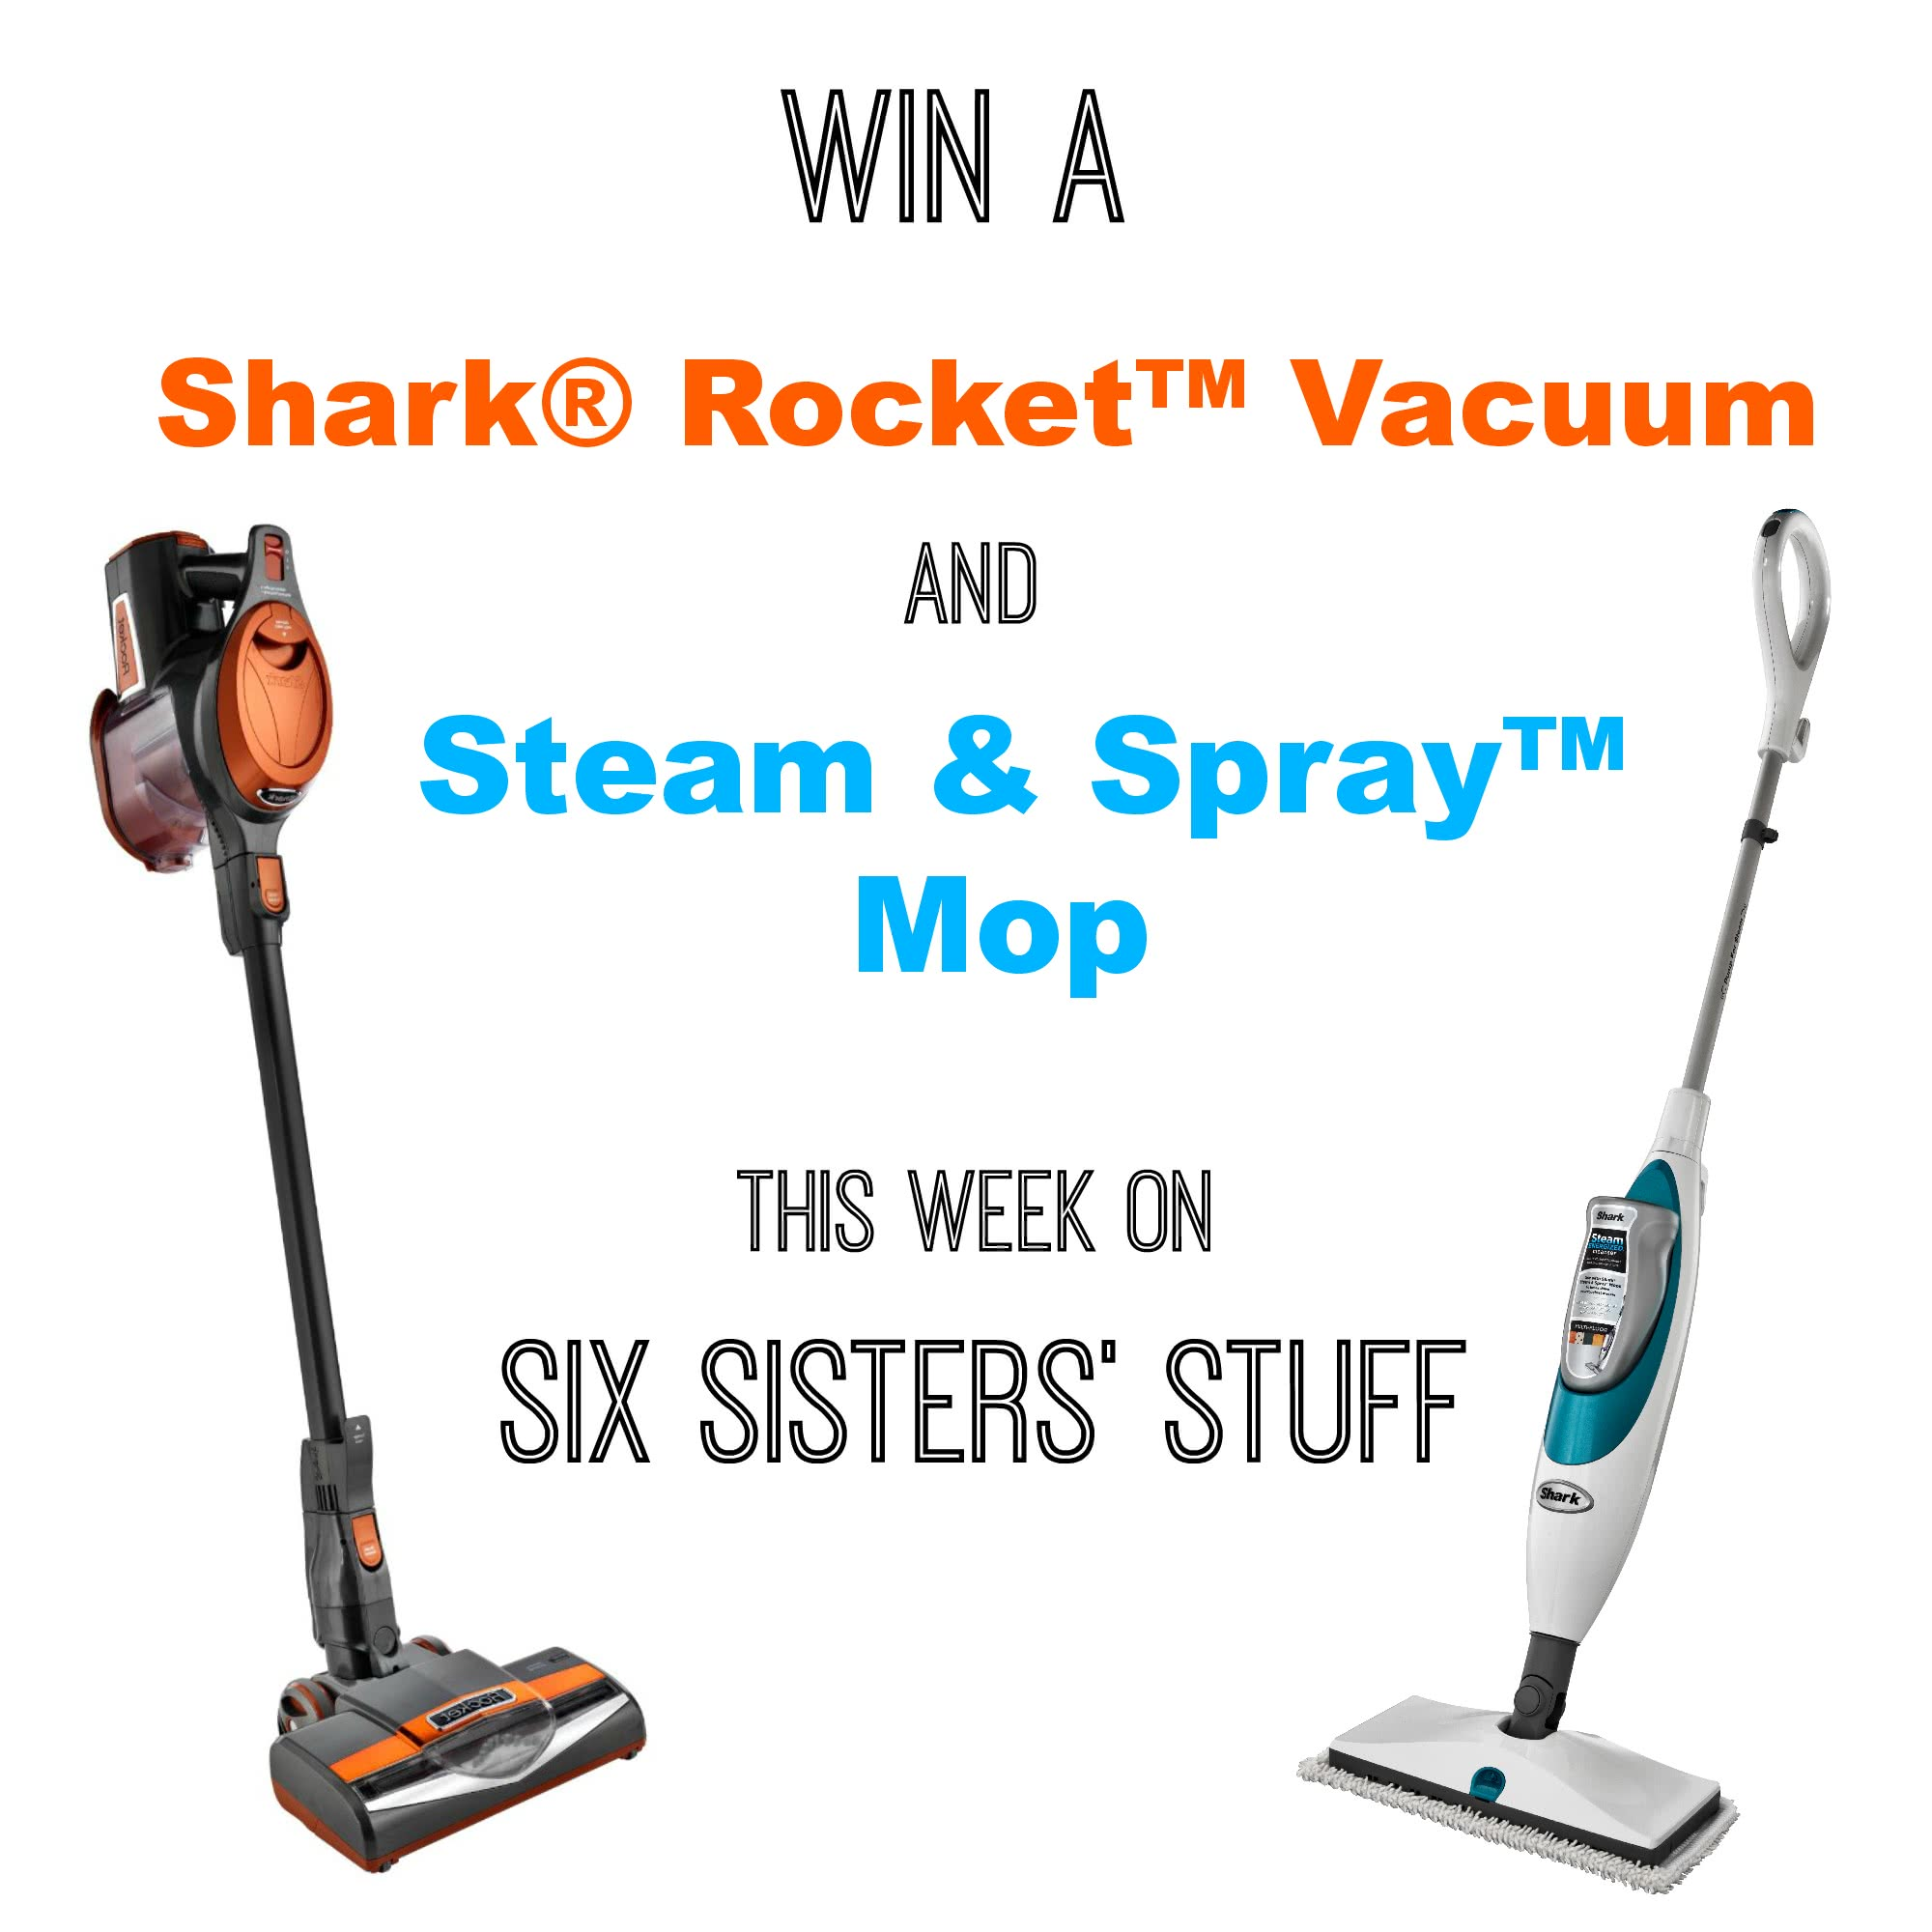 Shark® Rocket Vacuum and Steam & Spray Mop GIVEAWAY!